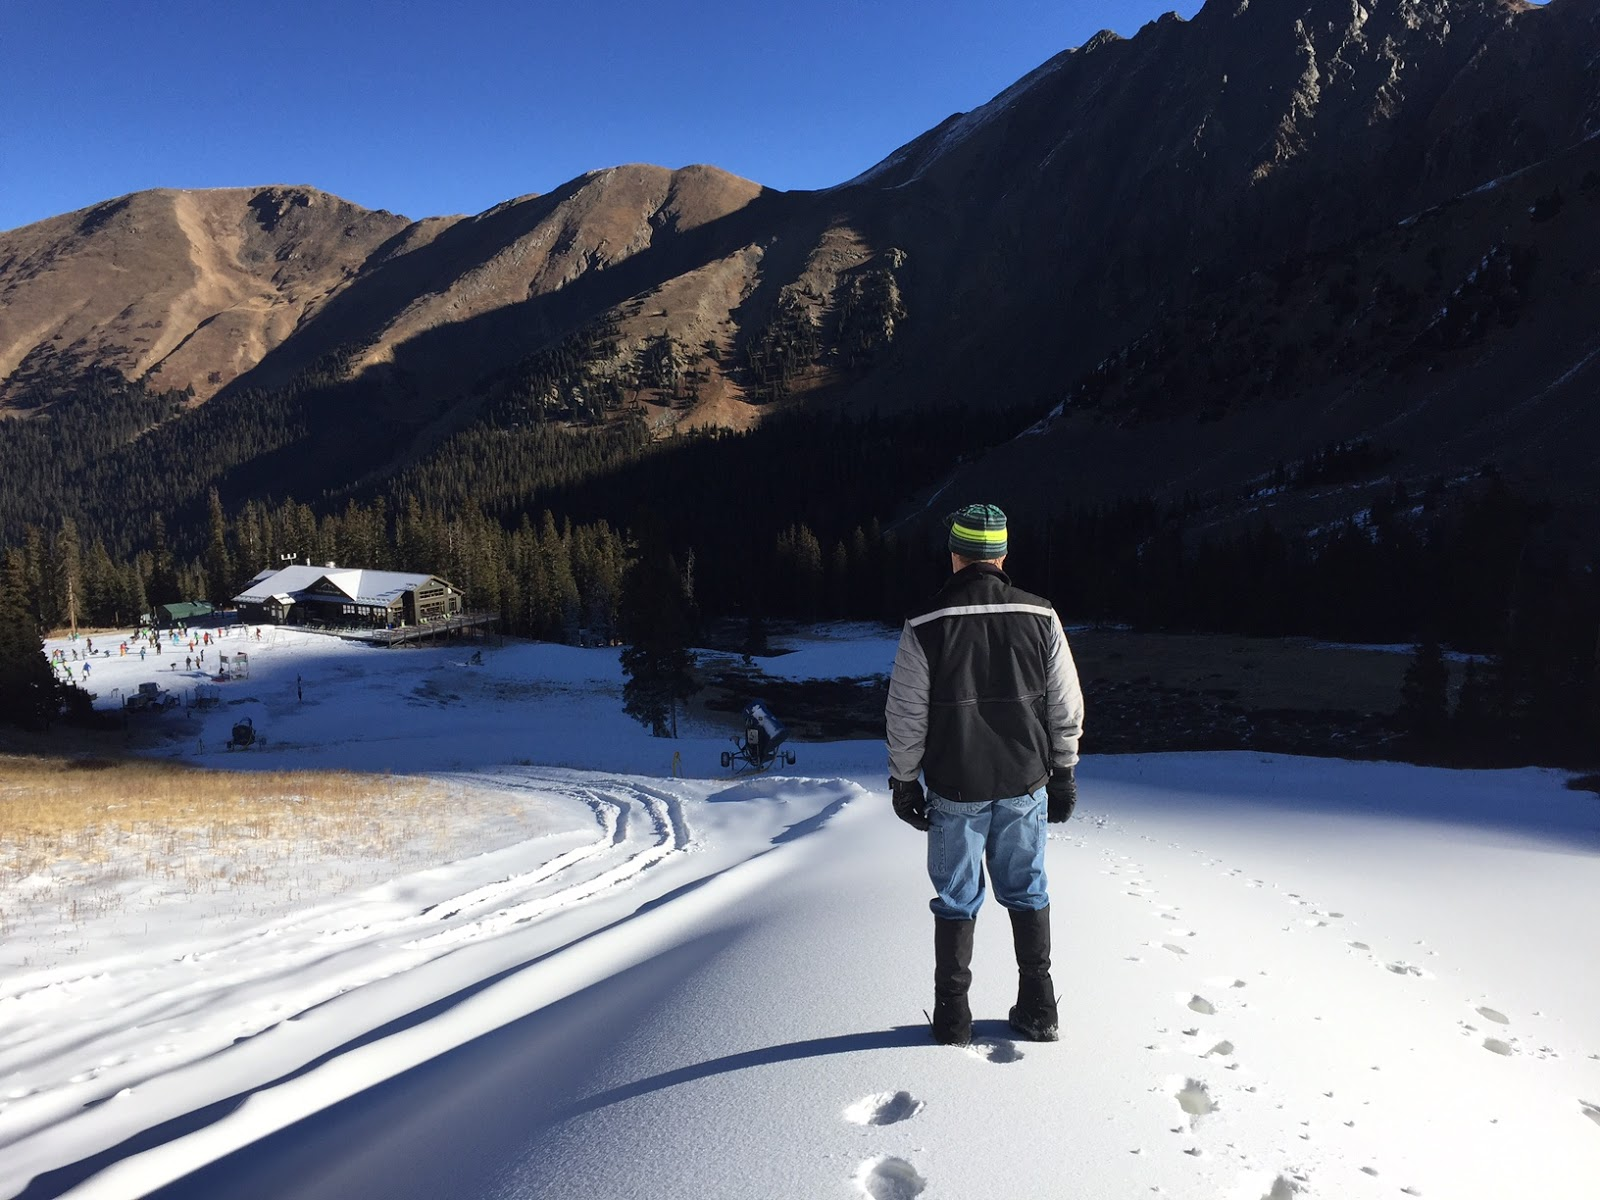 Alpine ski resorts plagued by lack of snow - Arapahoe Basin Is Working To Open The Upper Mountain As You Can Tell From Conditions On